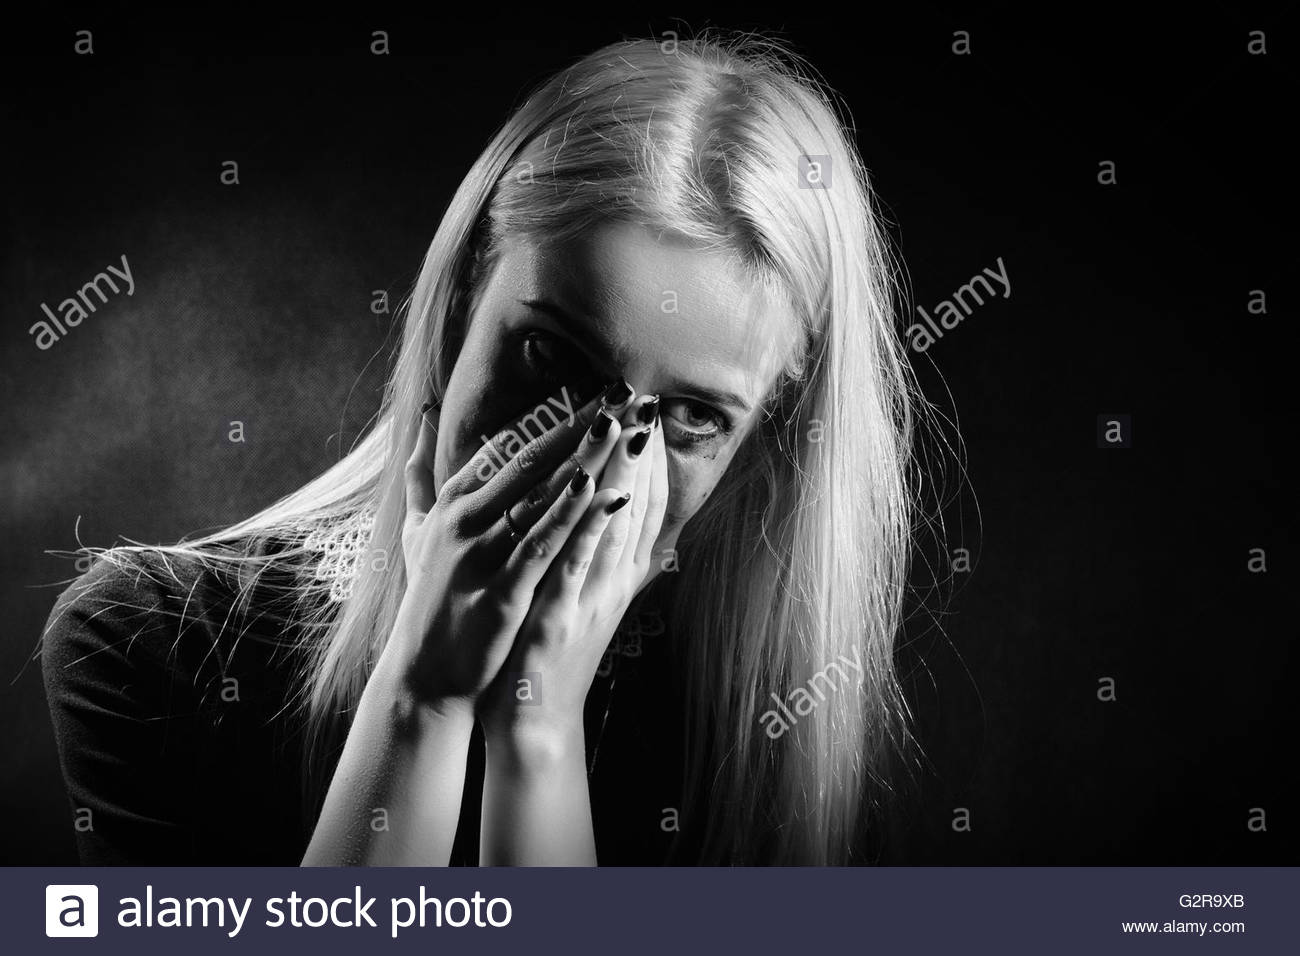 sad shocked girl crying on black background monochrome image 1300x956